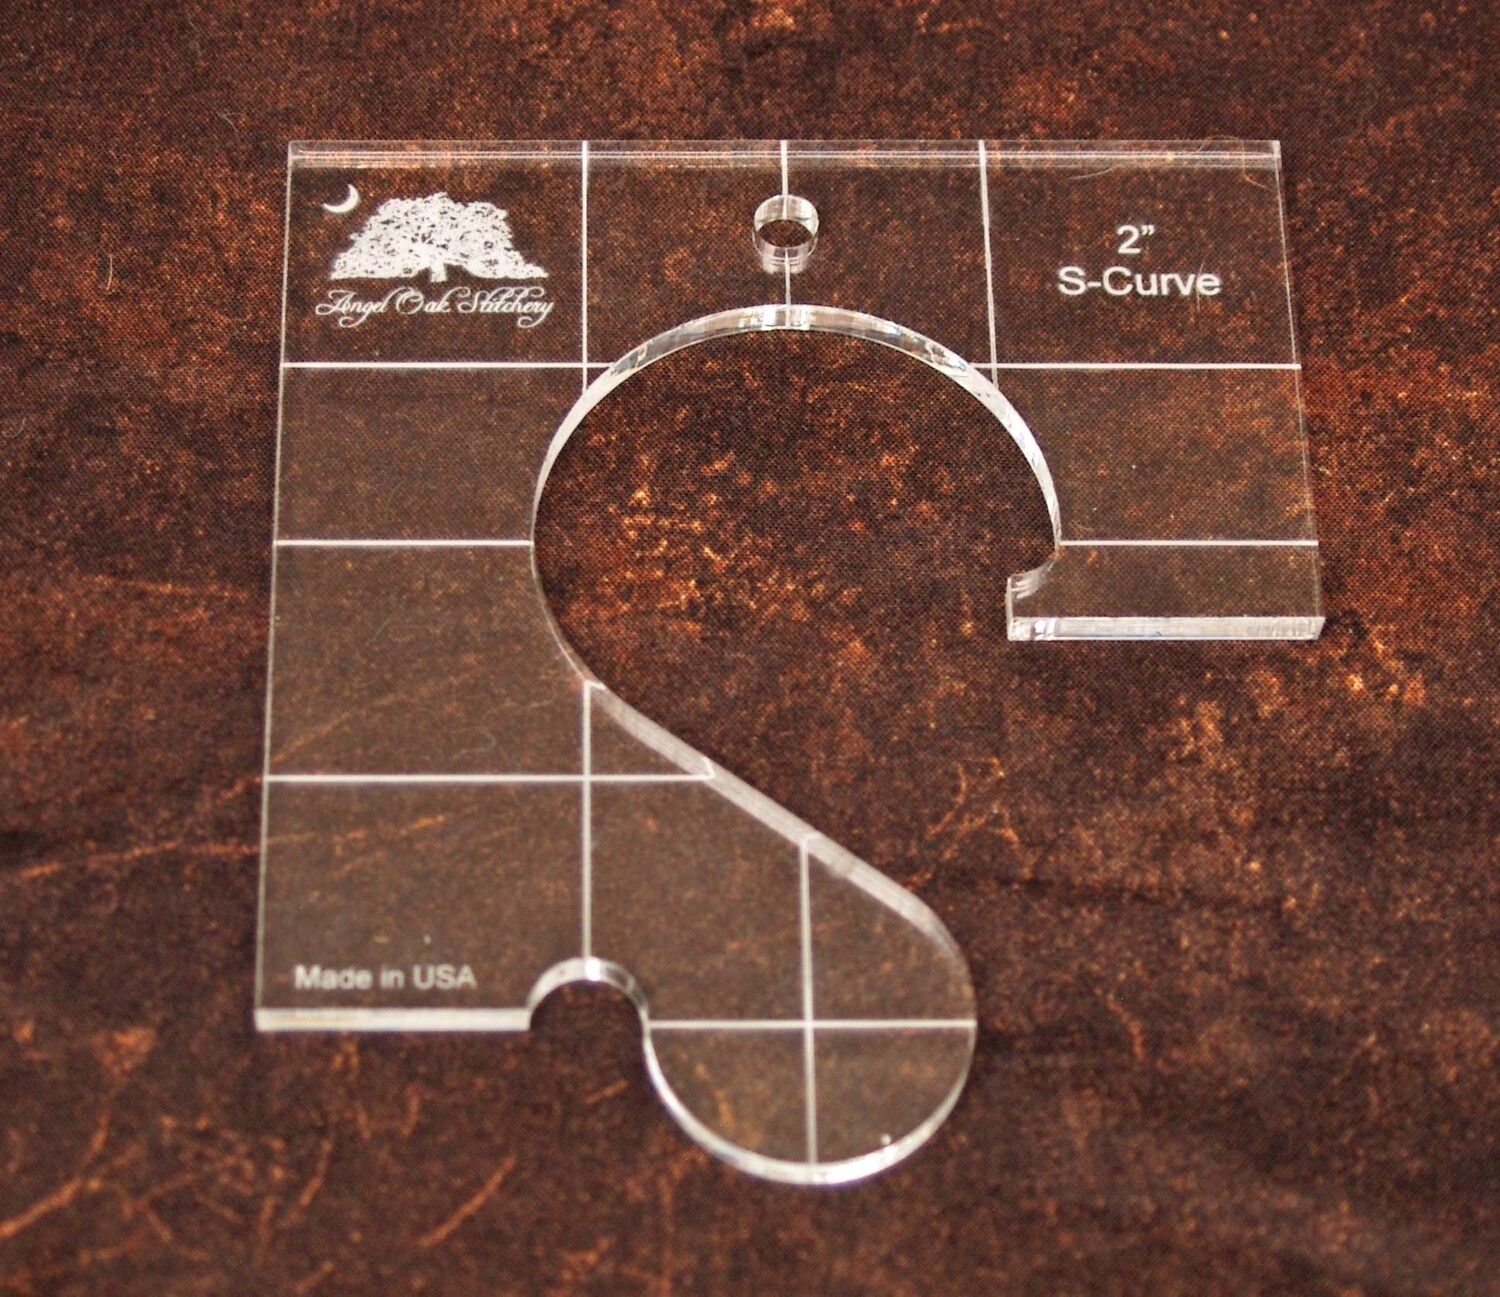 2 inch S-Curve Low Shank Rulerwork Quilting Template